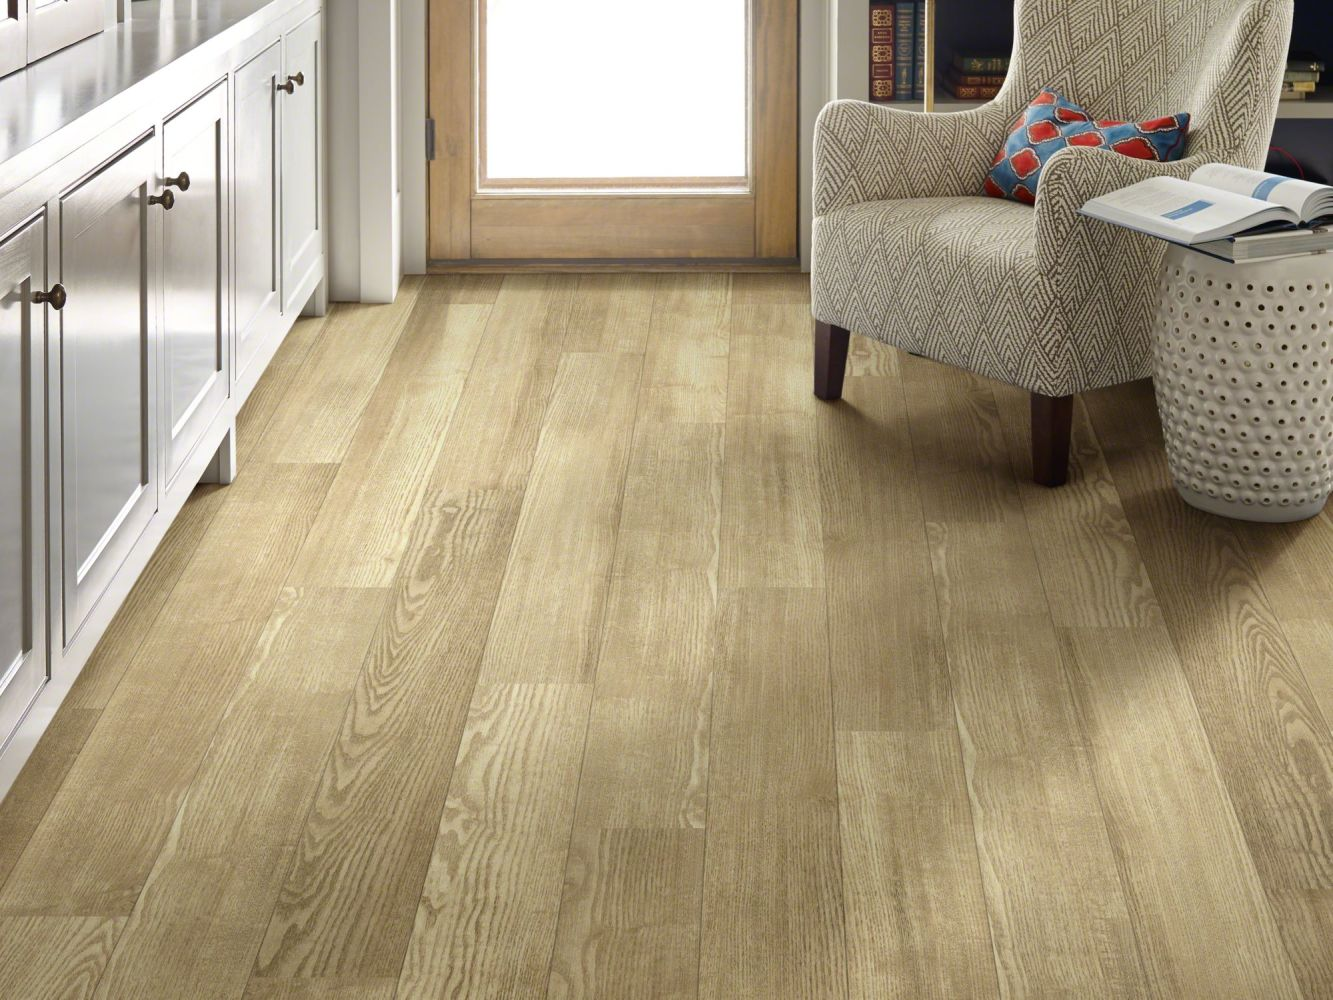 Shaw Floors Resilient Residential Three Rivers 20 Triple Ball 00173_0882V